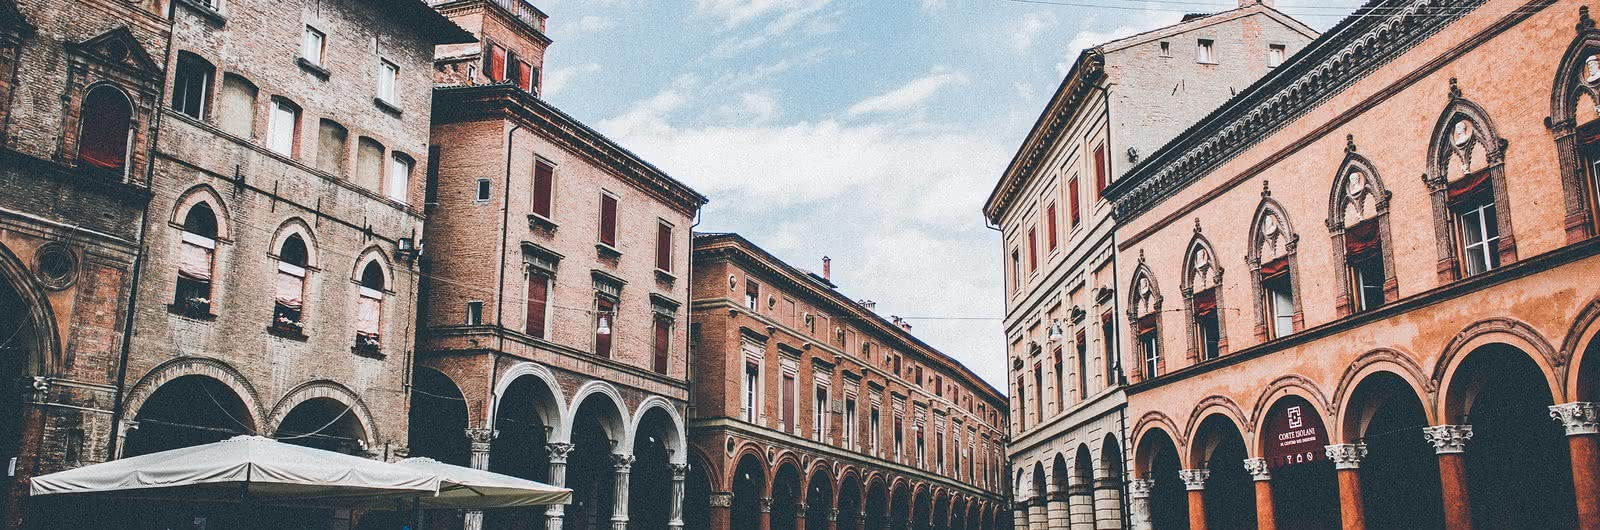 bologna city header